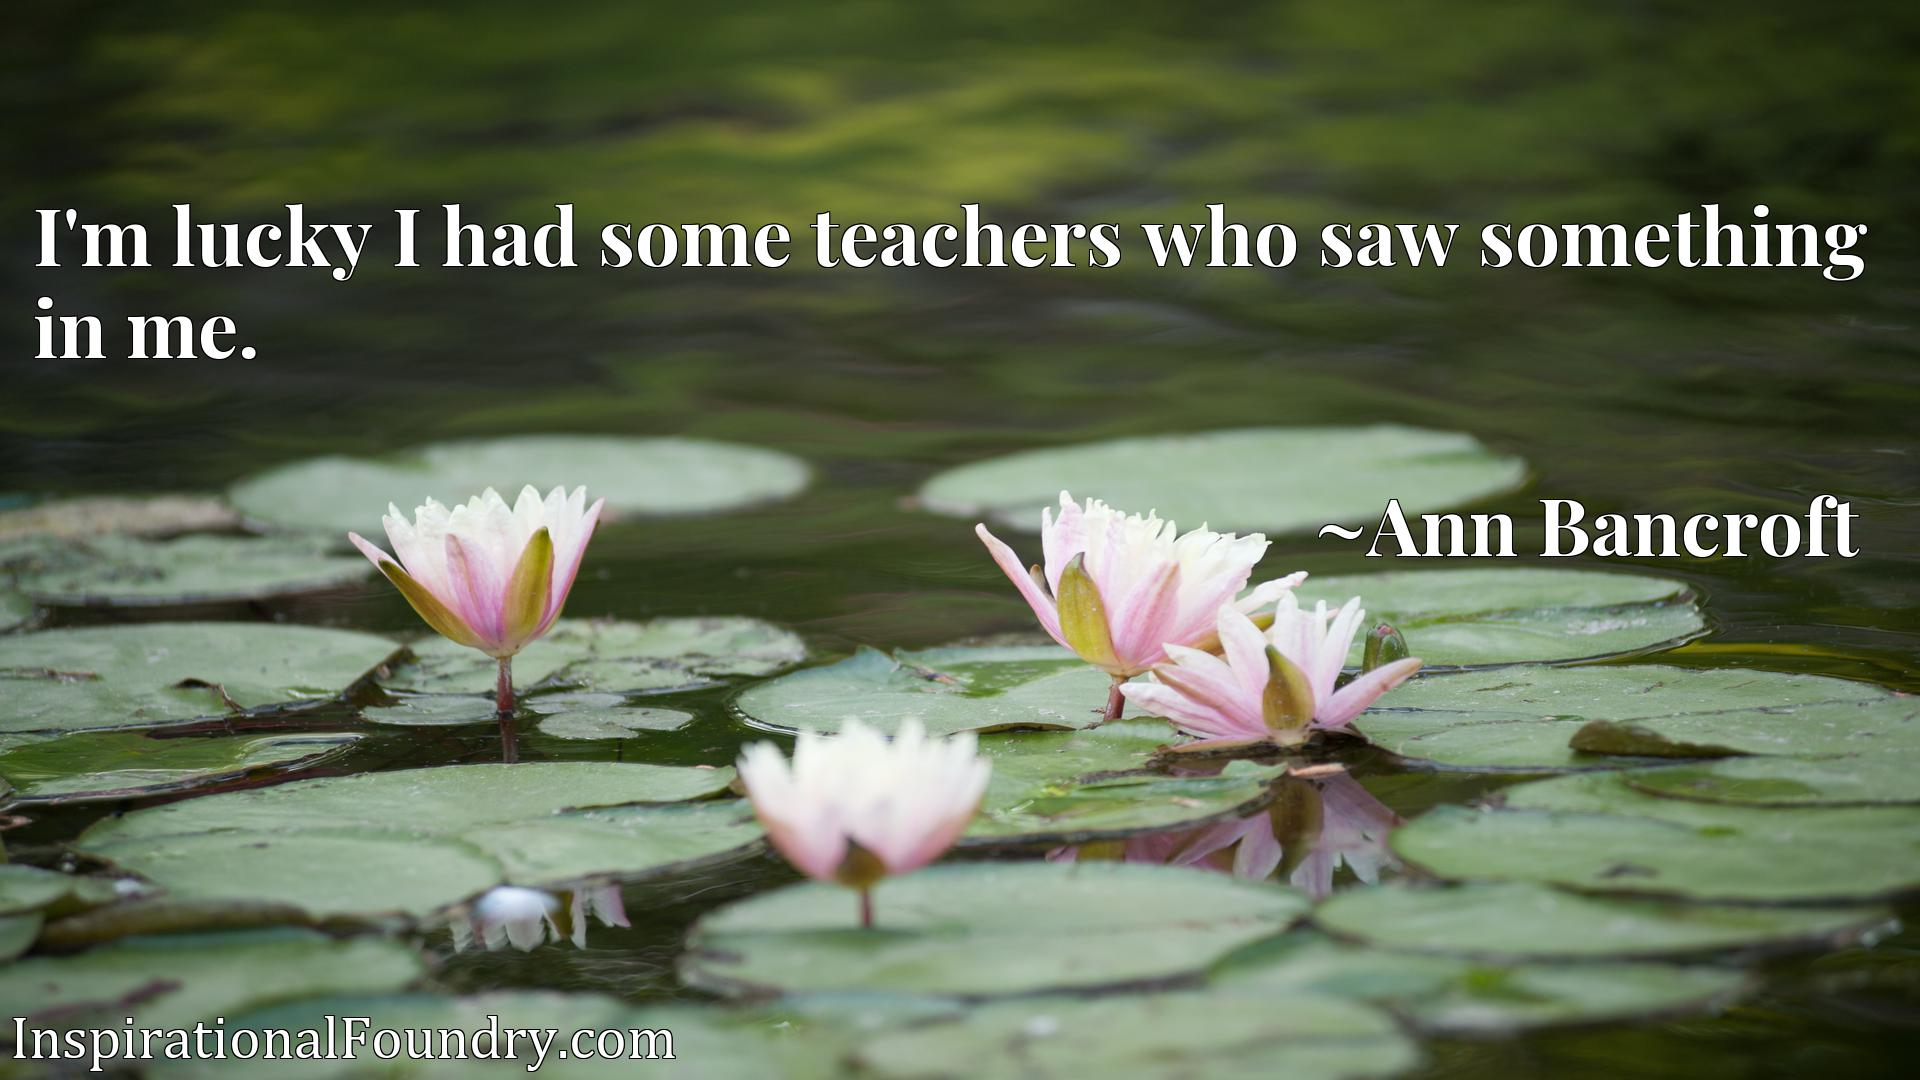 I'm lucky I had some teachers who saw something in me.